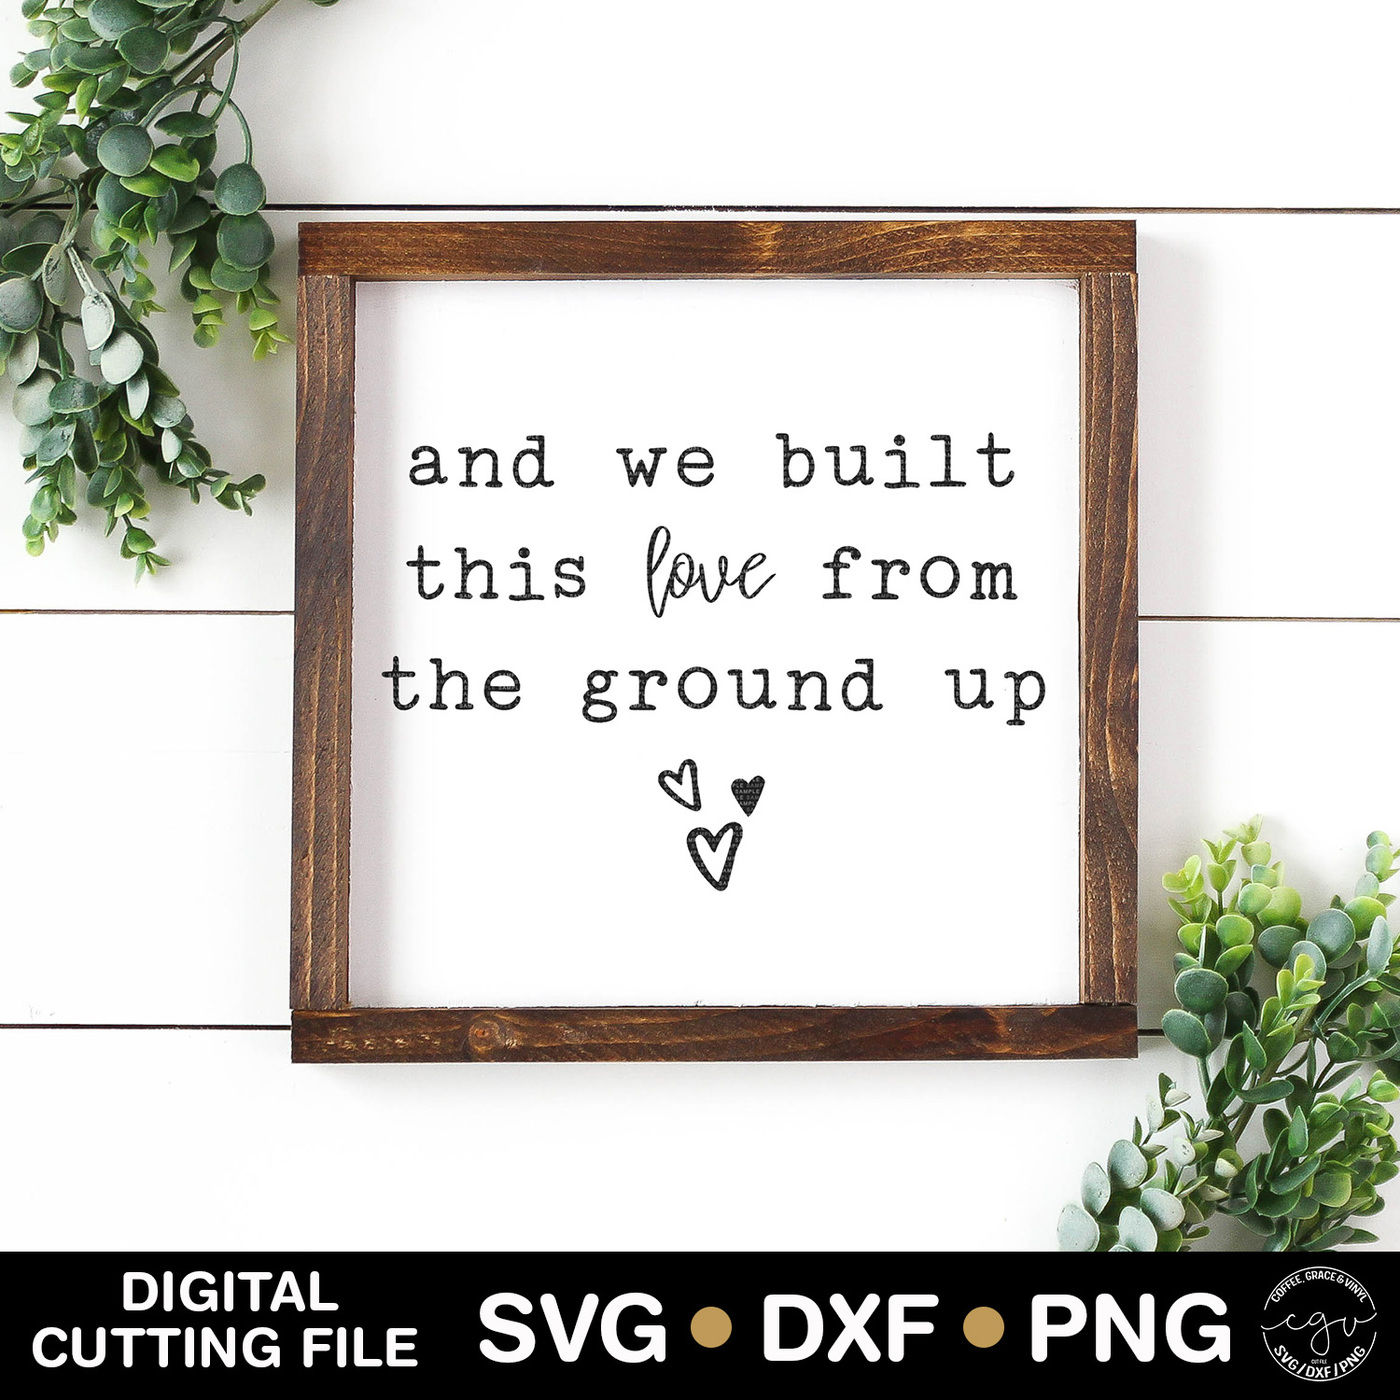 From The Ground Up and we built this love from the ground up cut file by coffee